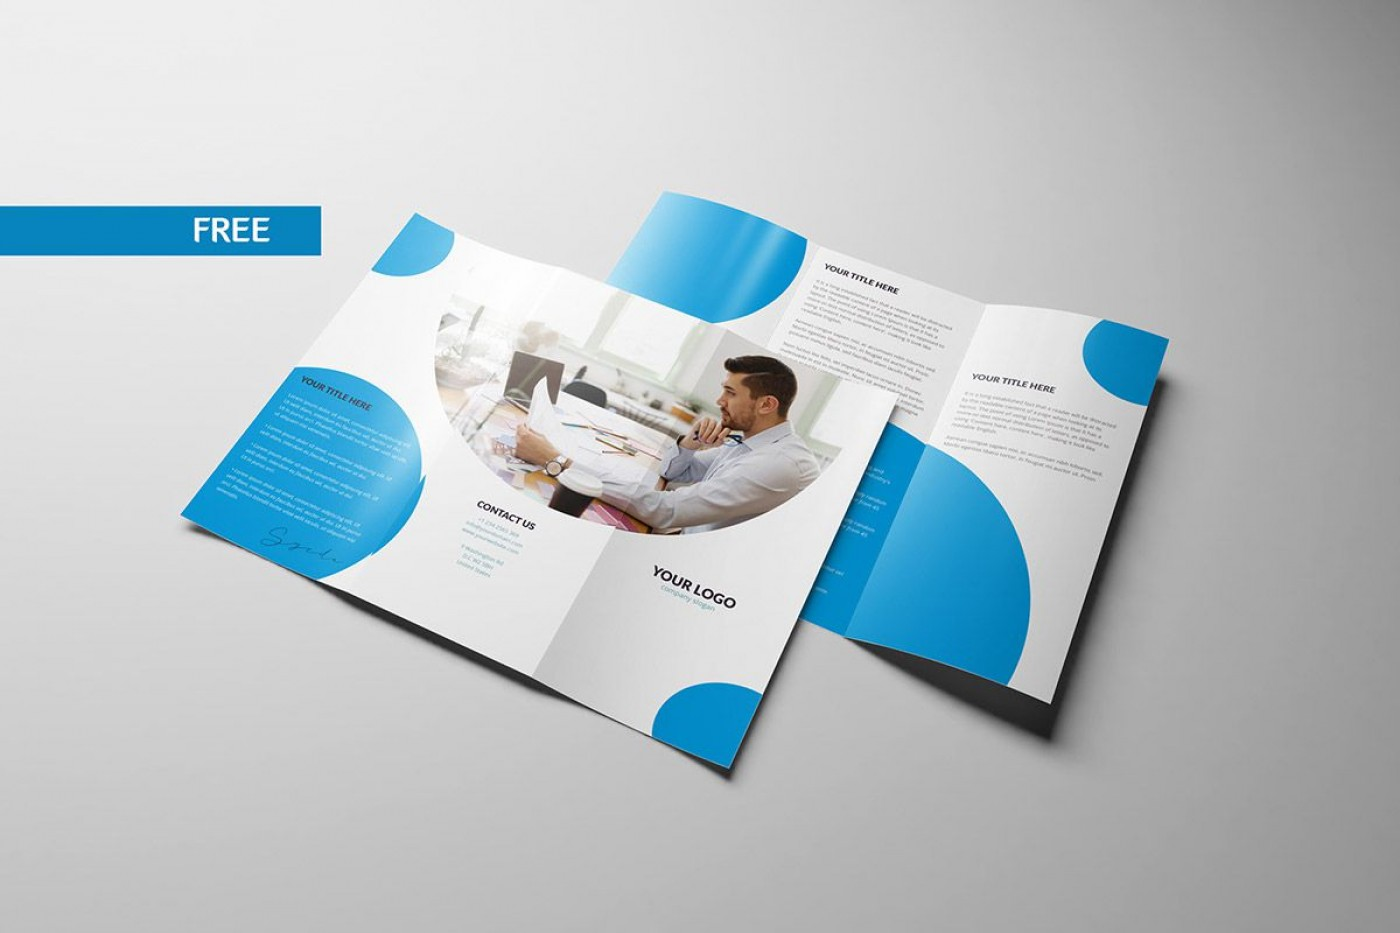 004 Archaicawful Free Tri Fold Brochure Template High Definition  Microsoft Word 2010 Download Ai Downloadable For1400